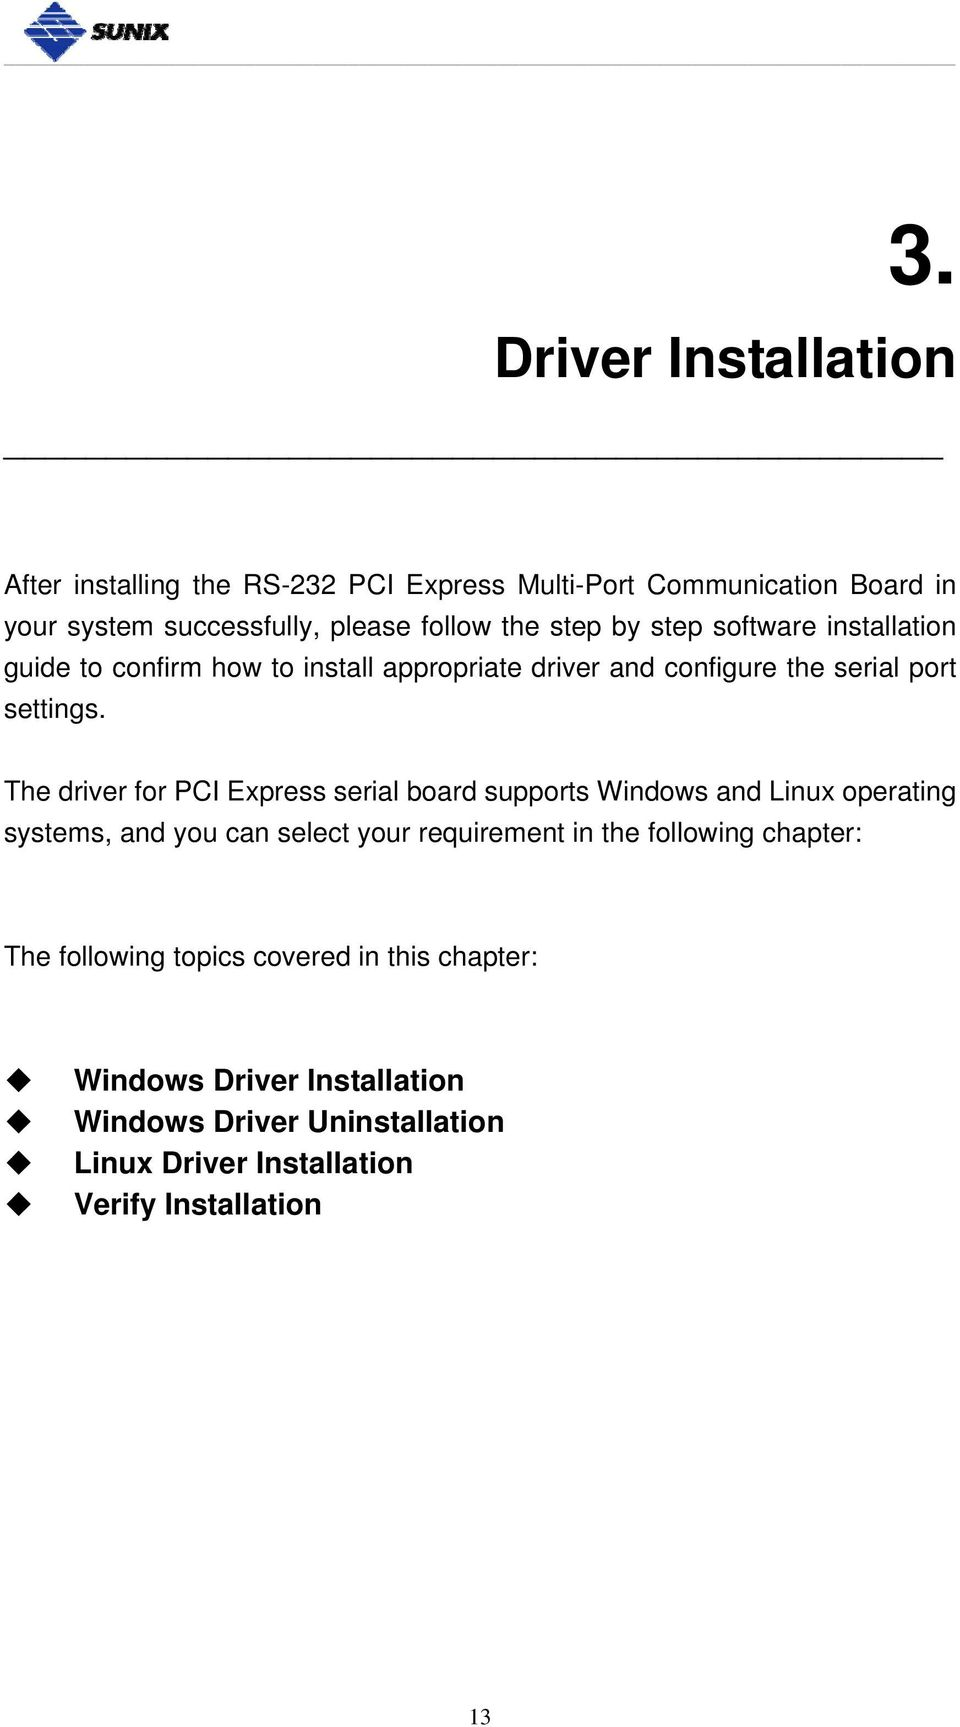 The driver for PCI Express serial board supports Windows and Linux operating systems, and you can select your requirement in the following